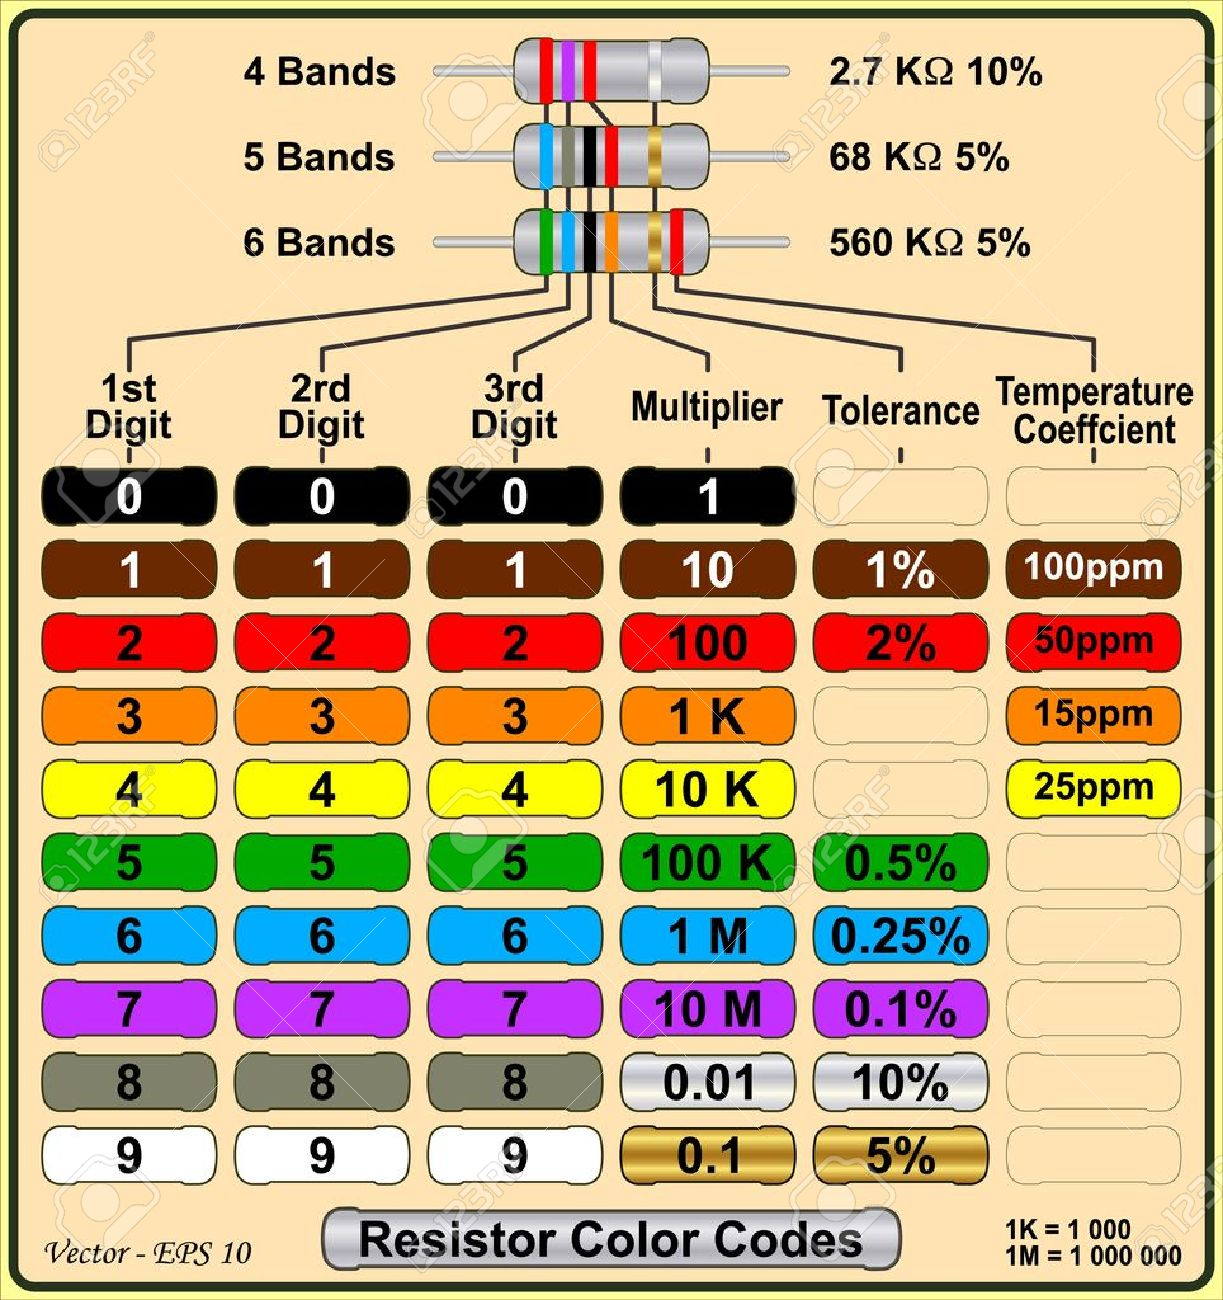 Color coding periodic table image collections periodic table images is kryptonite on the periodic table choice image periodic table color coding periodic table image collections gamestrikefo Choice Image